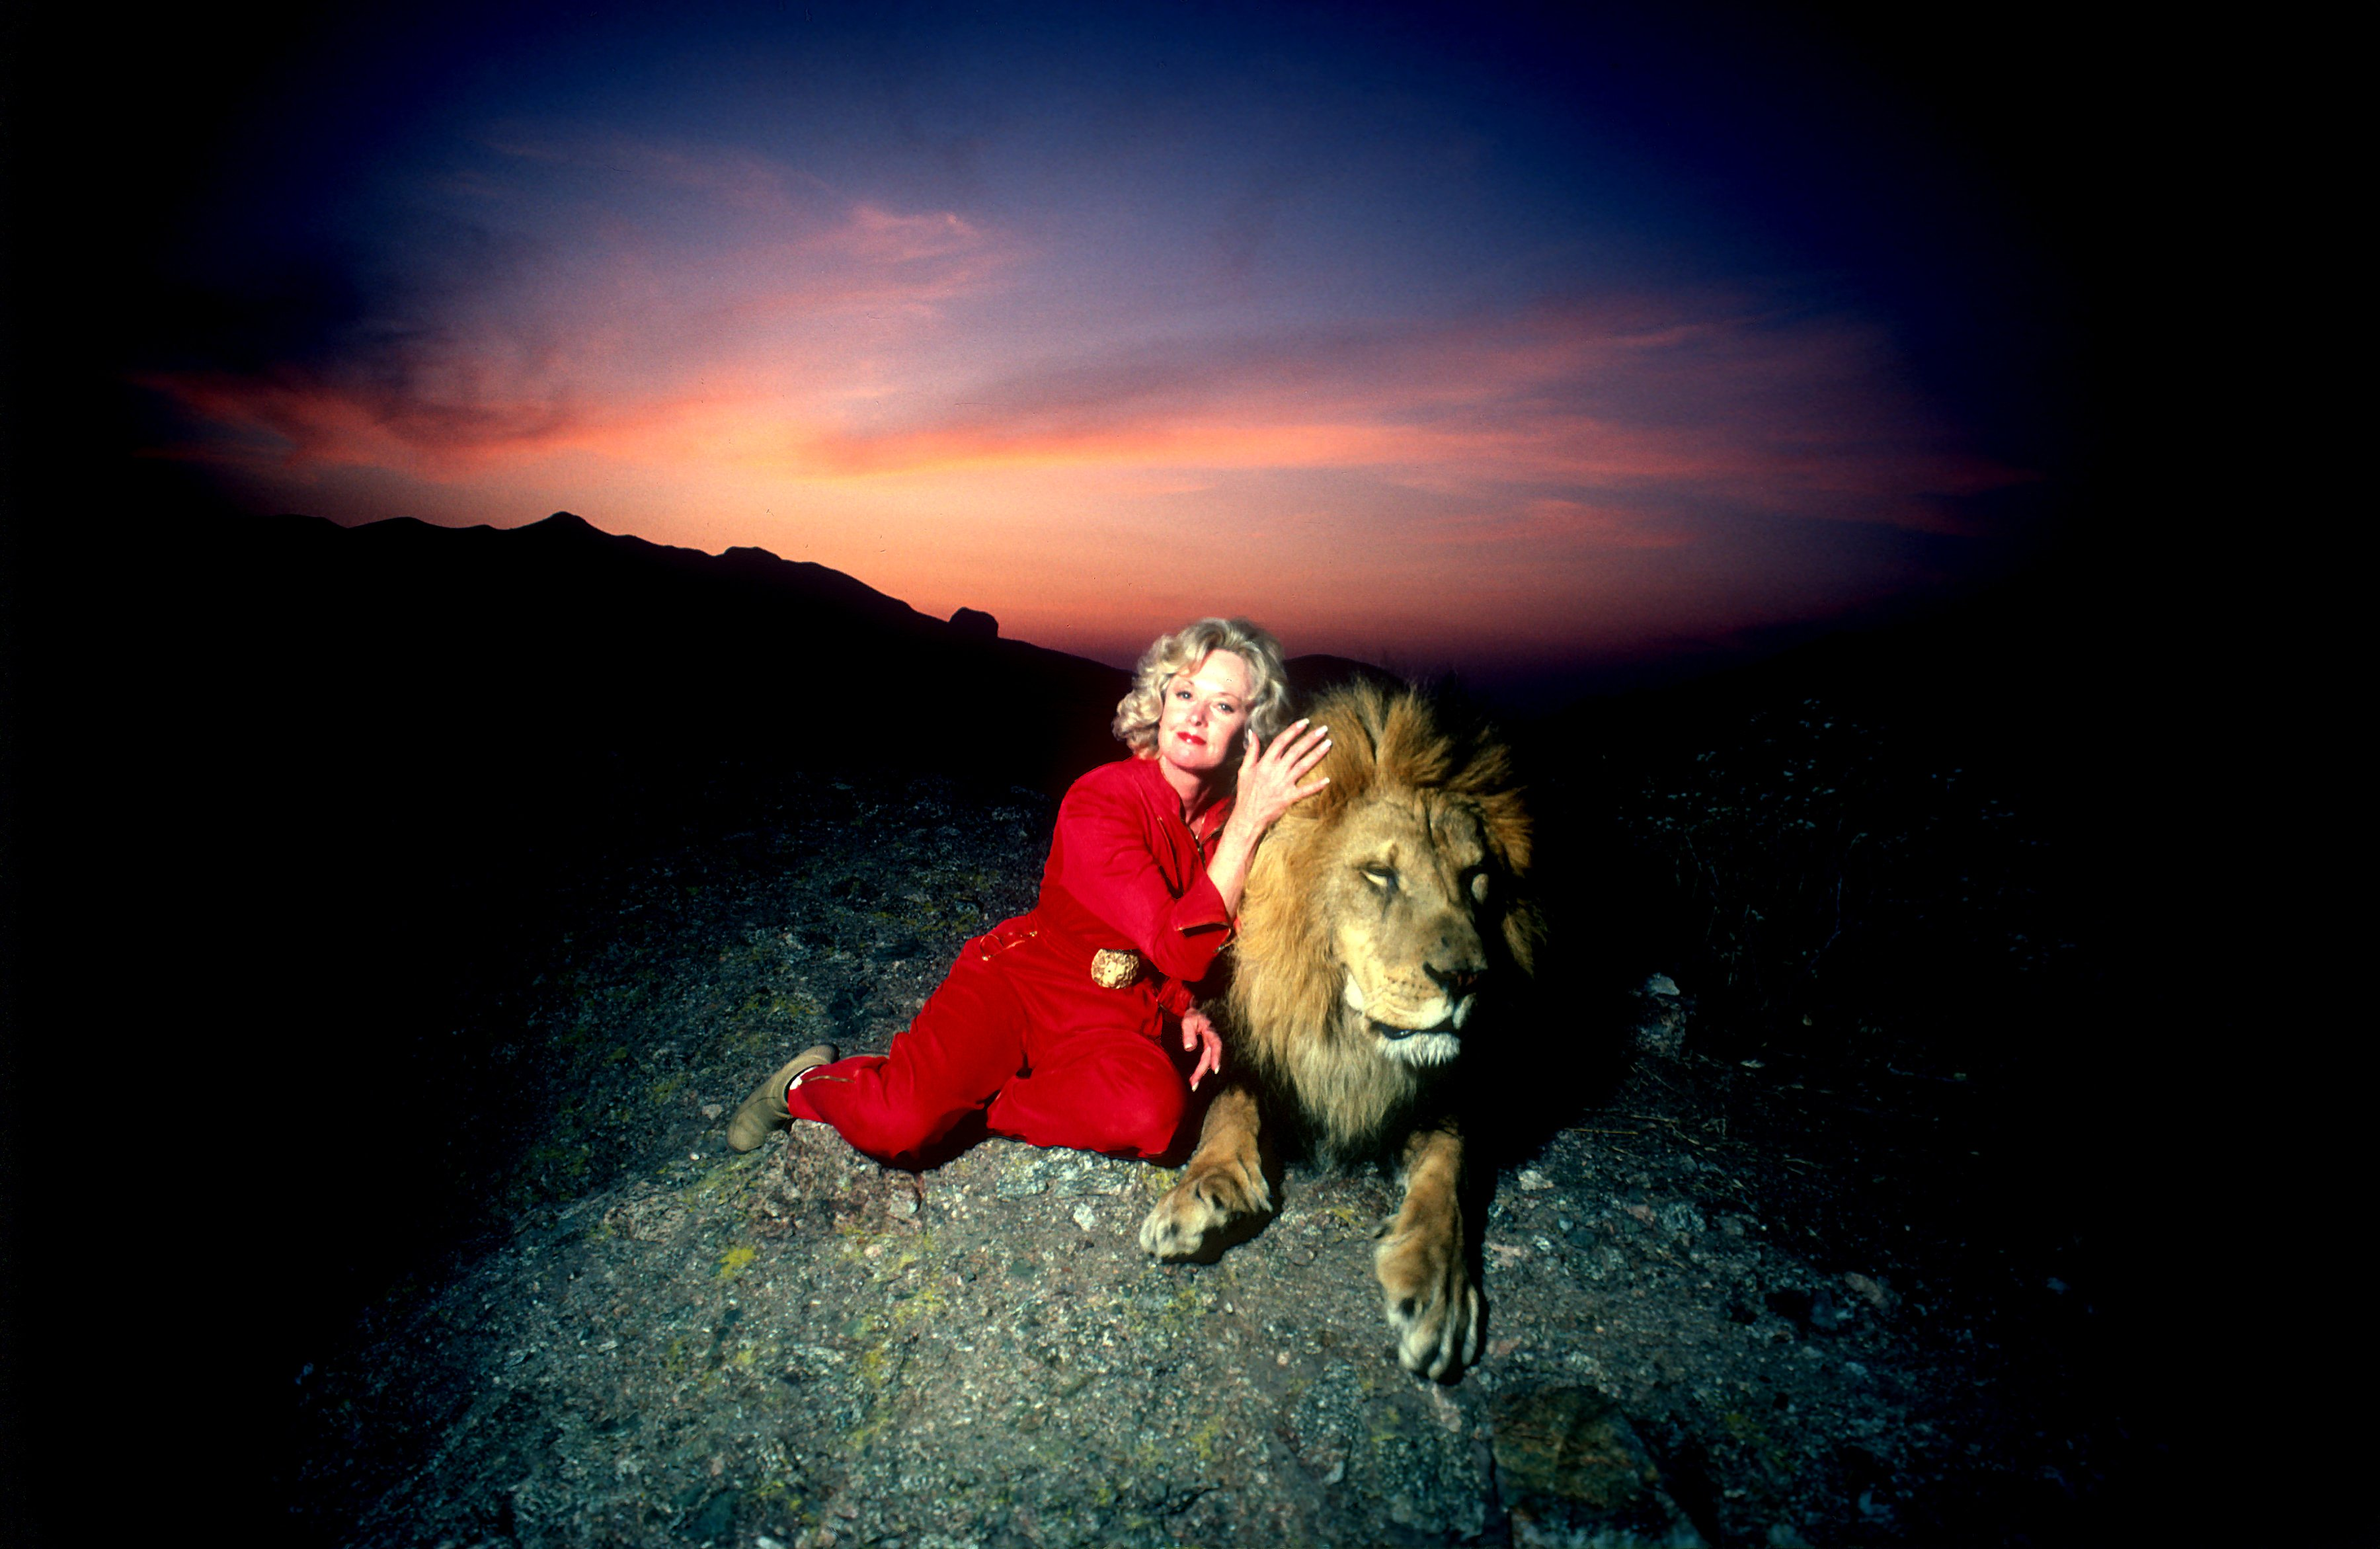 Actress Tipi Hedren, mother of Melanie Griffiths stands on a hill overlooking her Saugus Animal reserve with a full grown male lion. November 16, 1983  | Photo: Getty Images